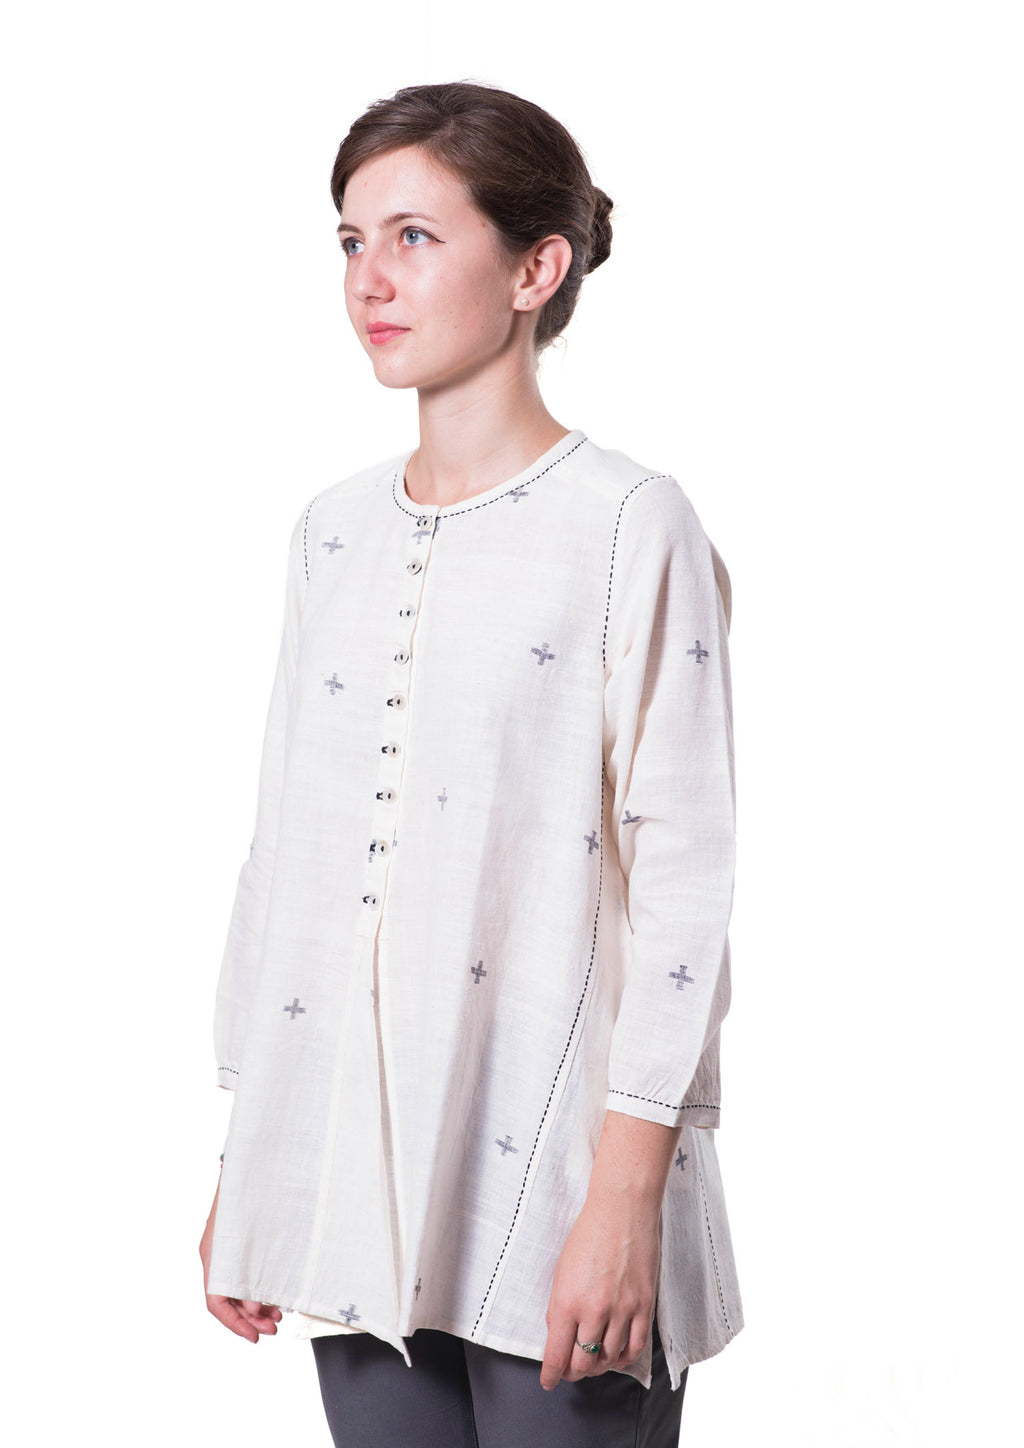 Off White Khadi Jamdani Top - RUMI - Upasana Design Studio